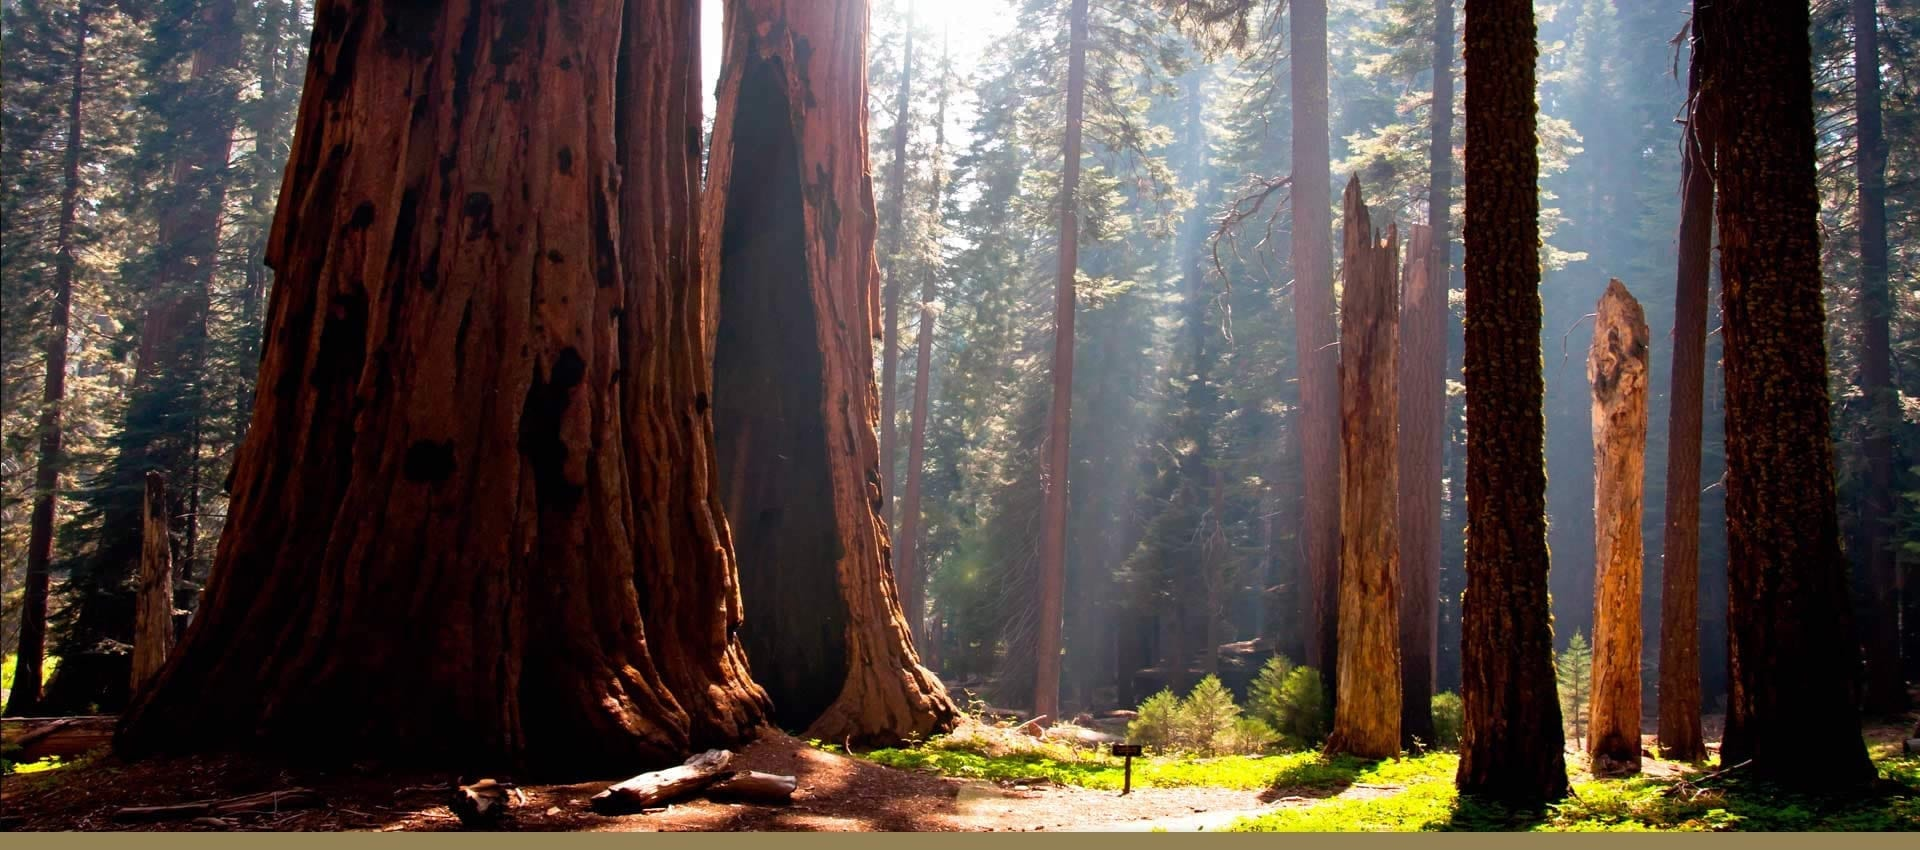 Explore the redwoods